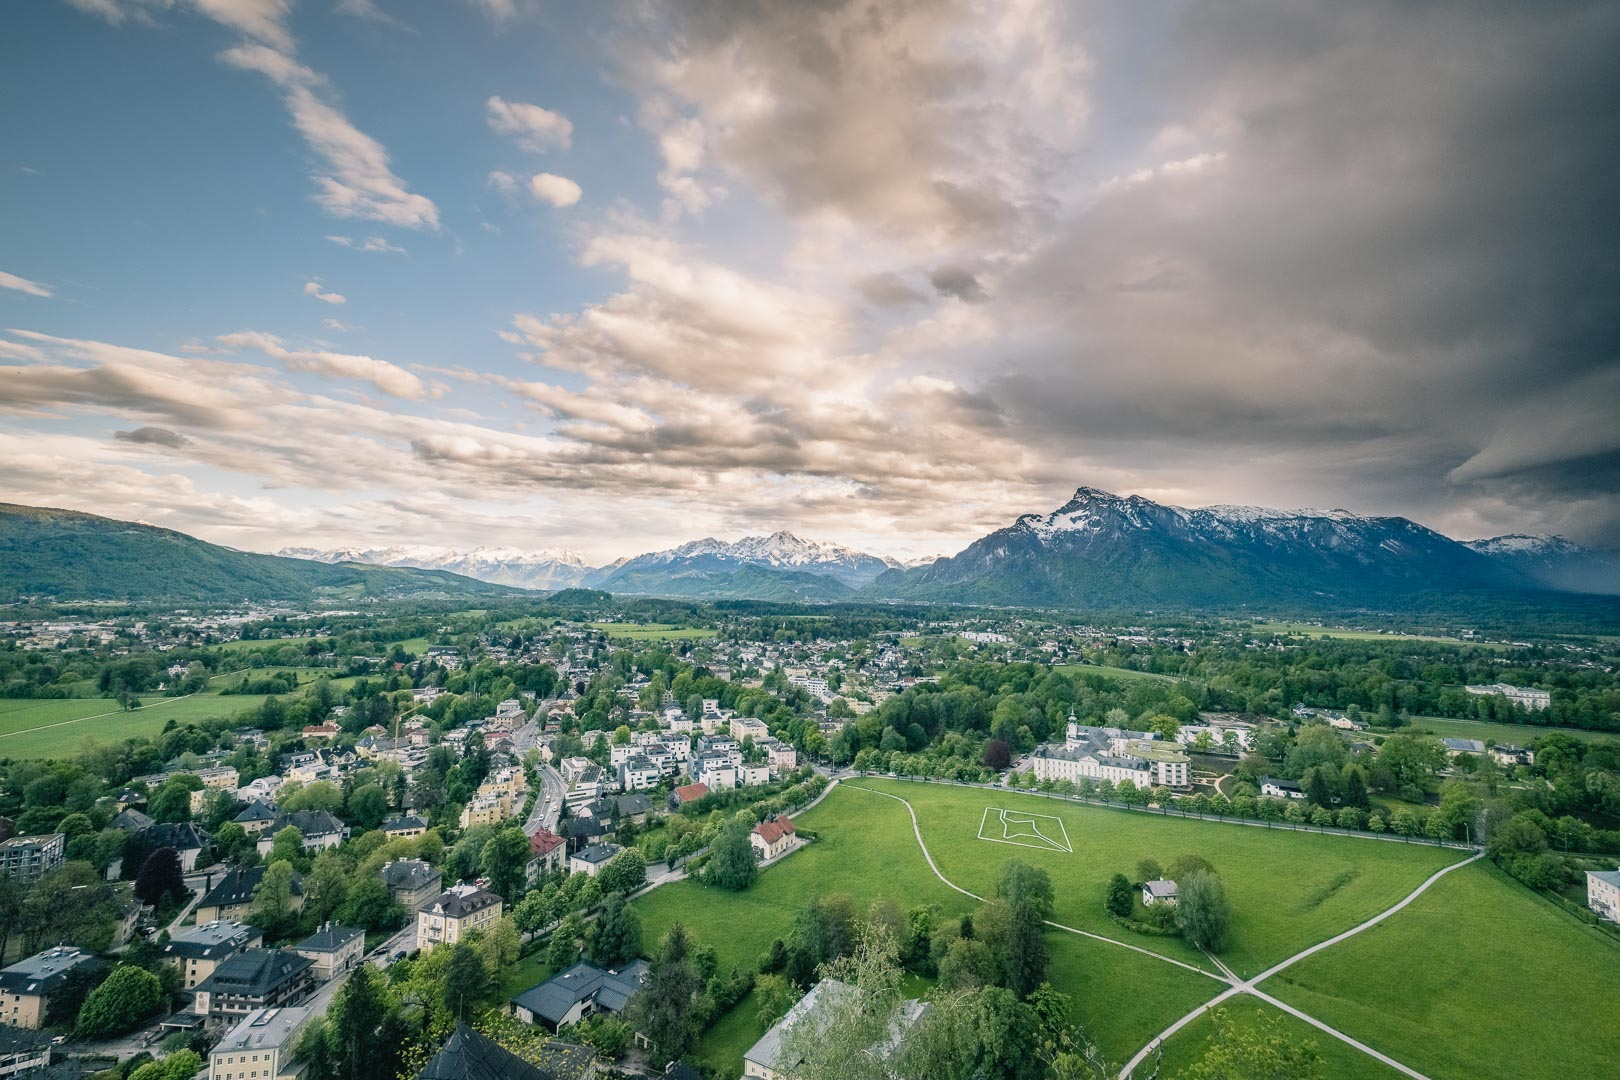 Landscape Photography on the Hohensalzburg Fortress